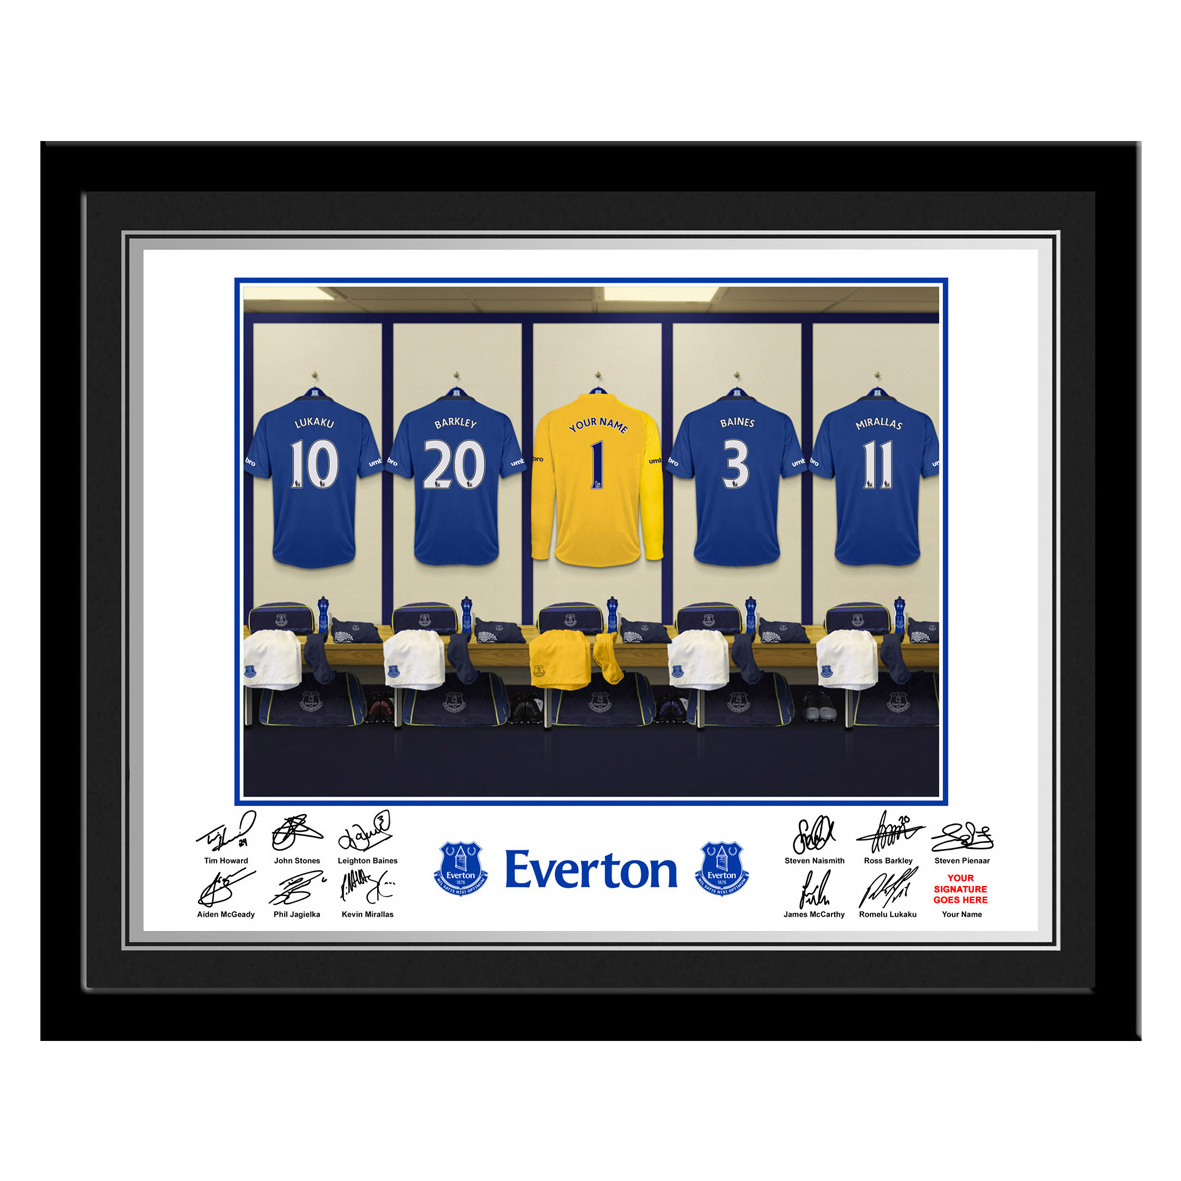 Everton Personalised Goal Keeper Dressing Room Photo Framed